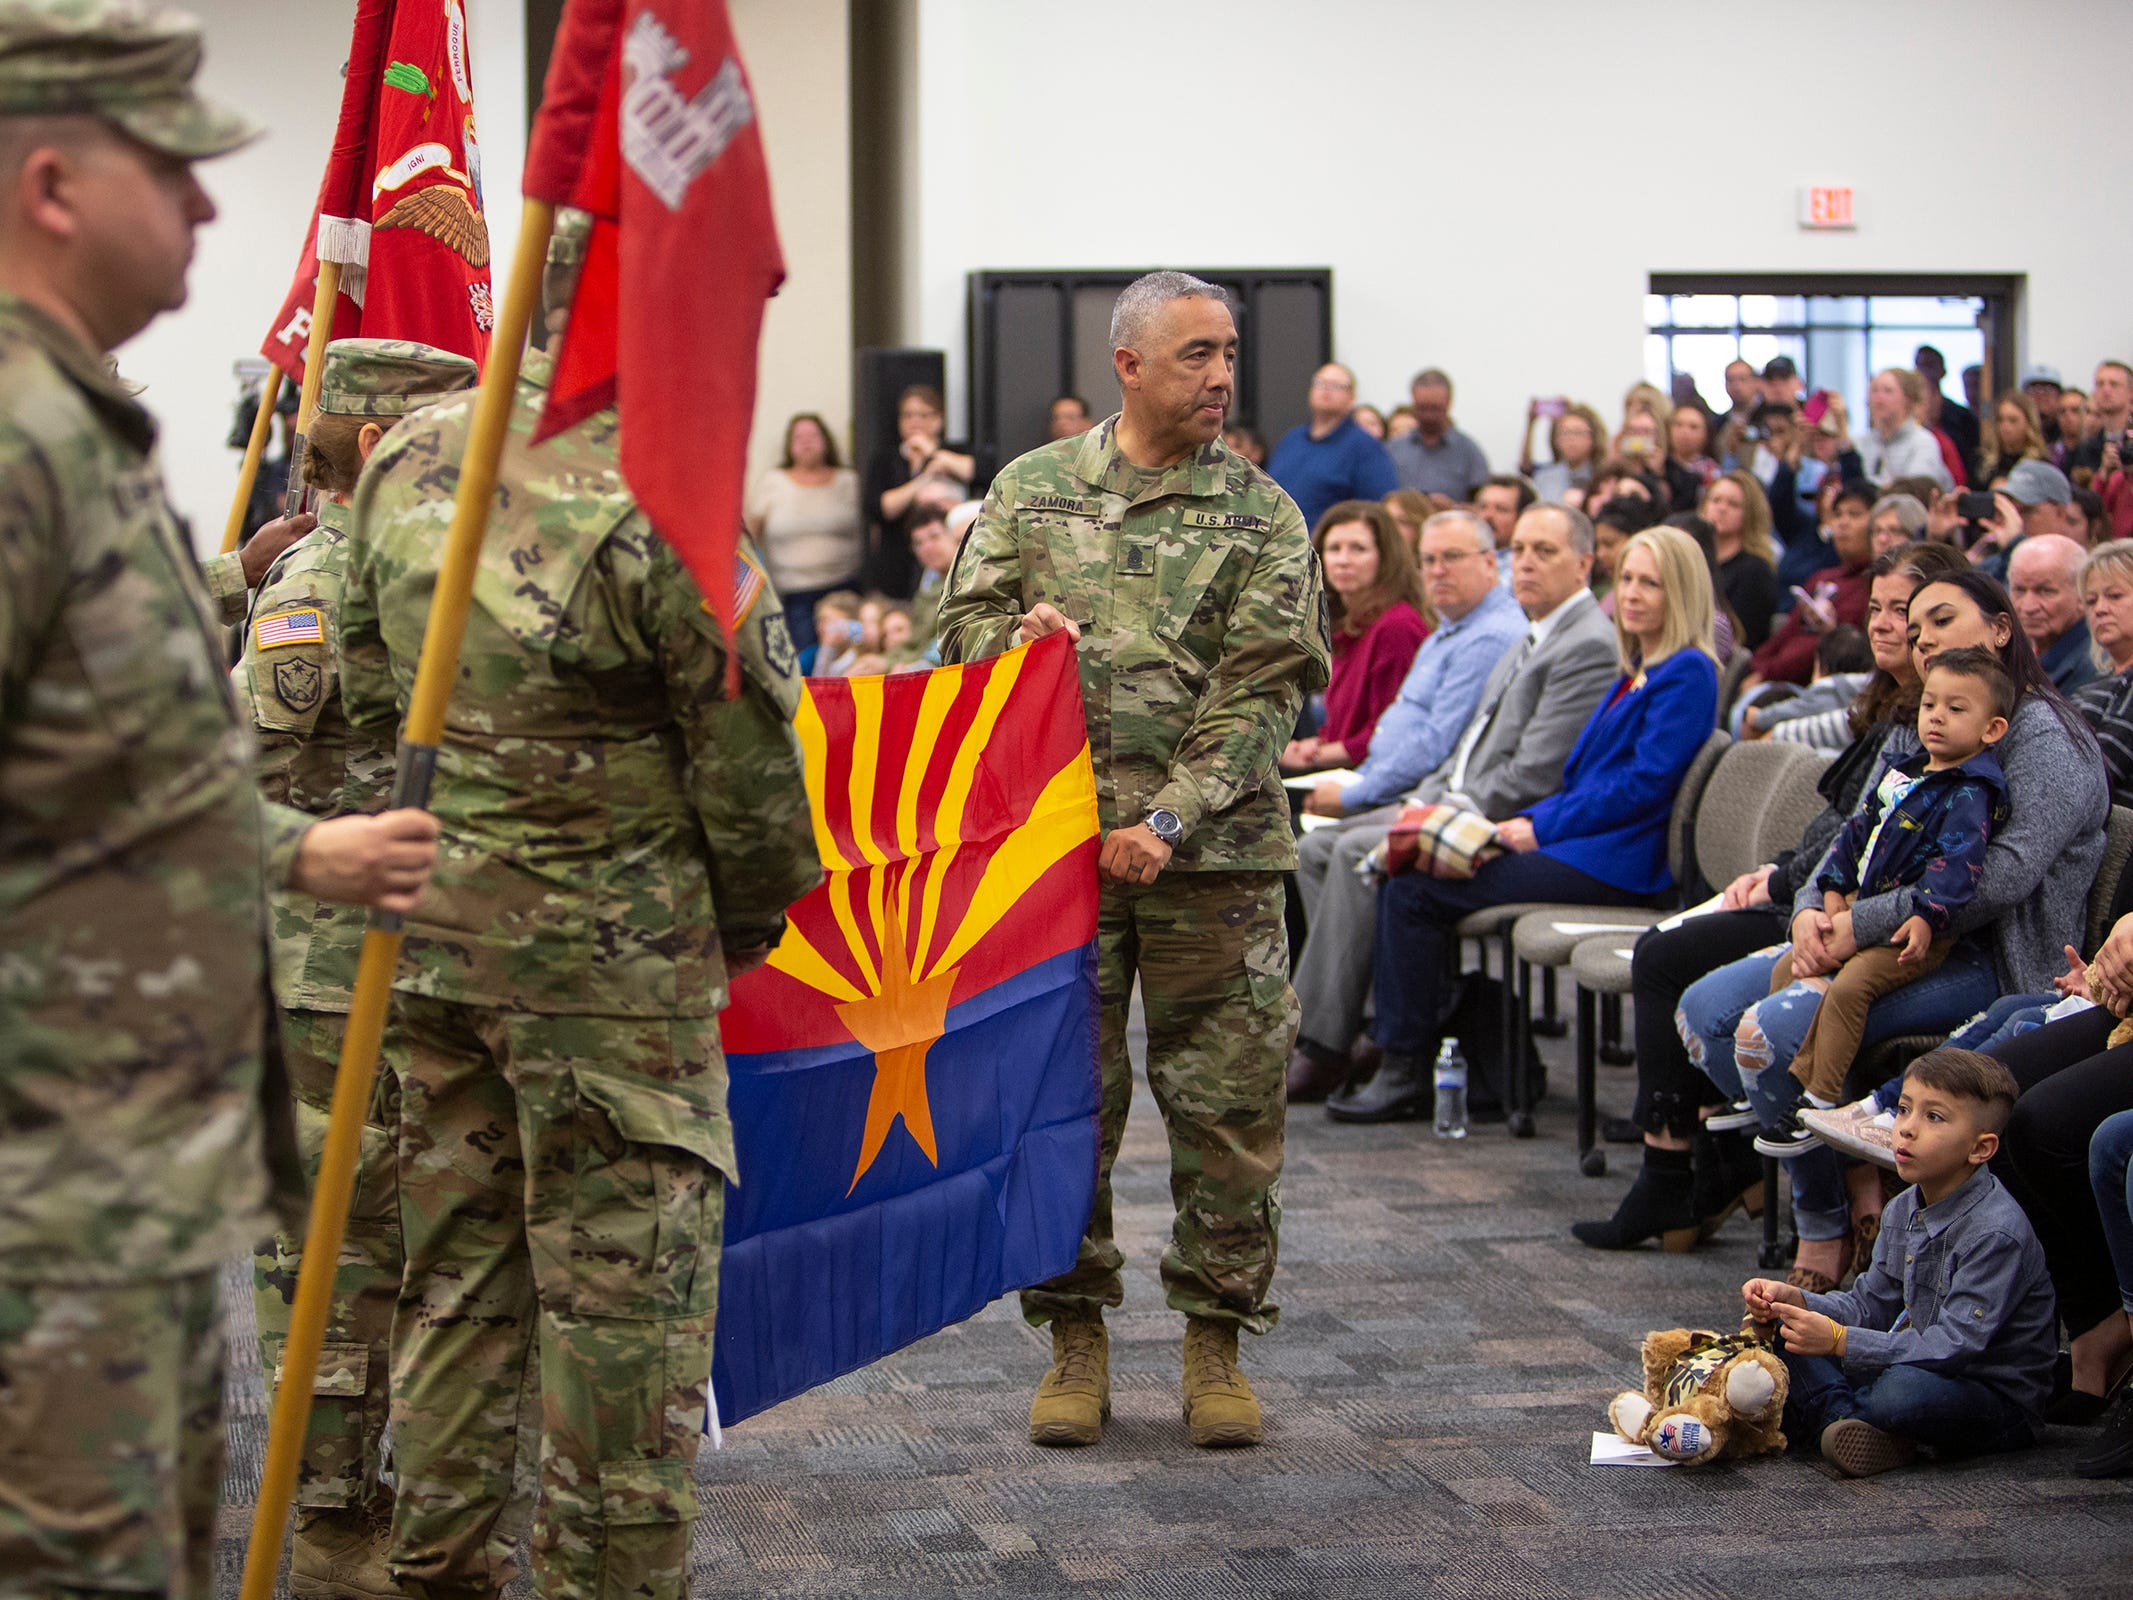 Lt. Col. Peggy Grunewald (not seen) and Maj. Fidel Zamora (right) hold the Arizona flag during the deployment ceremony for the 253rd Engineer Battalion at Papago Park Military Reservation on Sunday, Feb. 24, 2019.